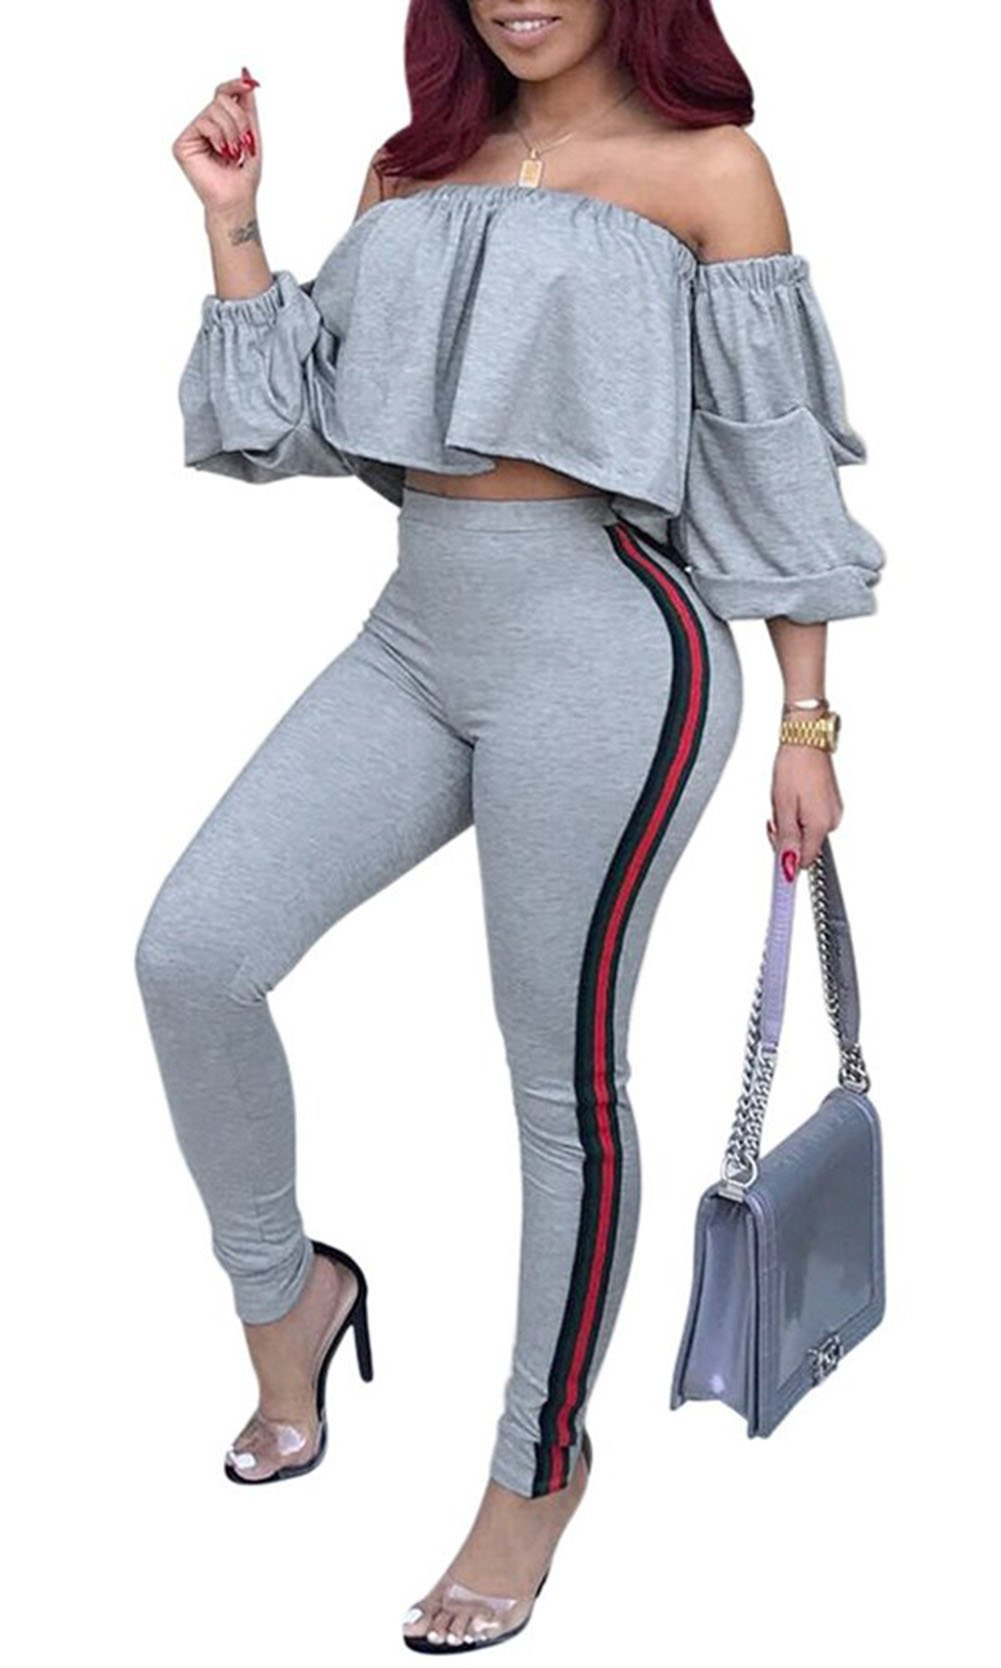 Bluewolfsea Womens Striped Jumpsuits Romper 2 Pieces Off Shoulder Outfits Ruffle Crop Top and High Waist Pants Set Jogger Large Grey